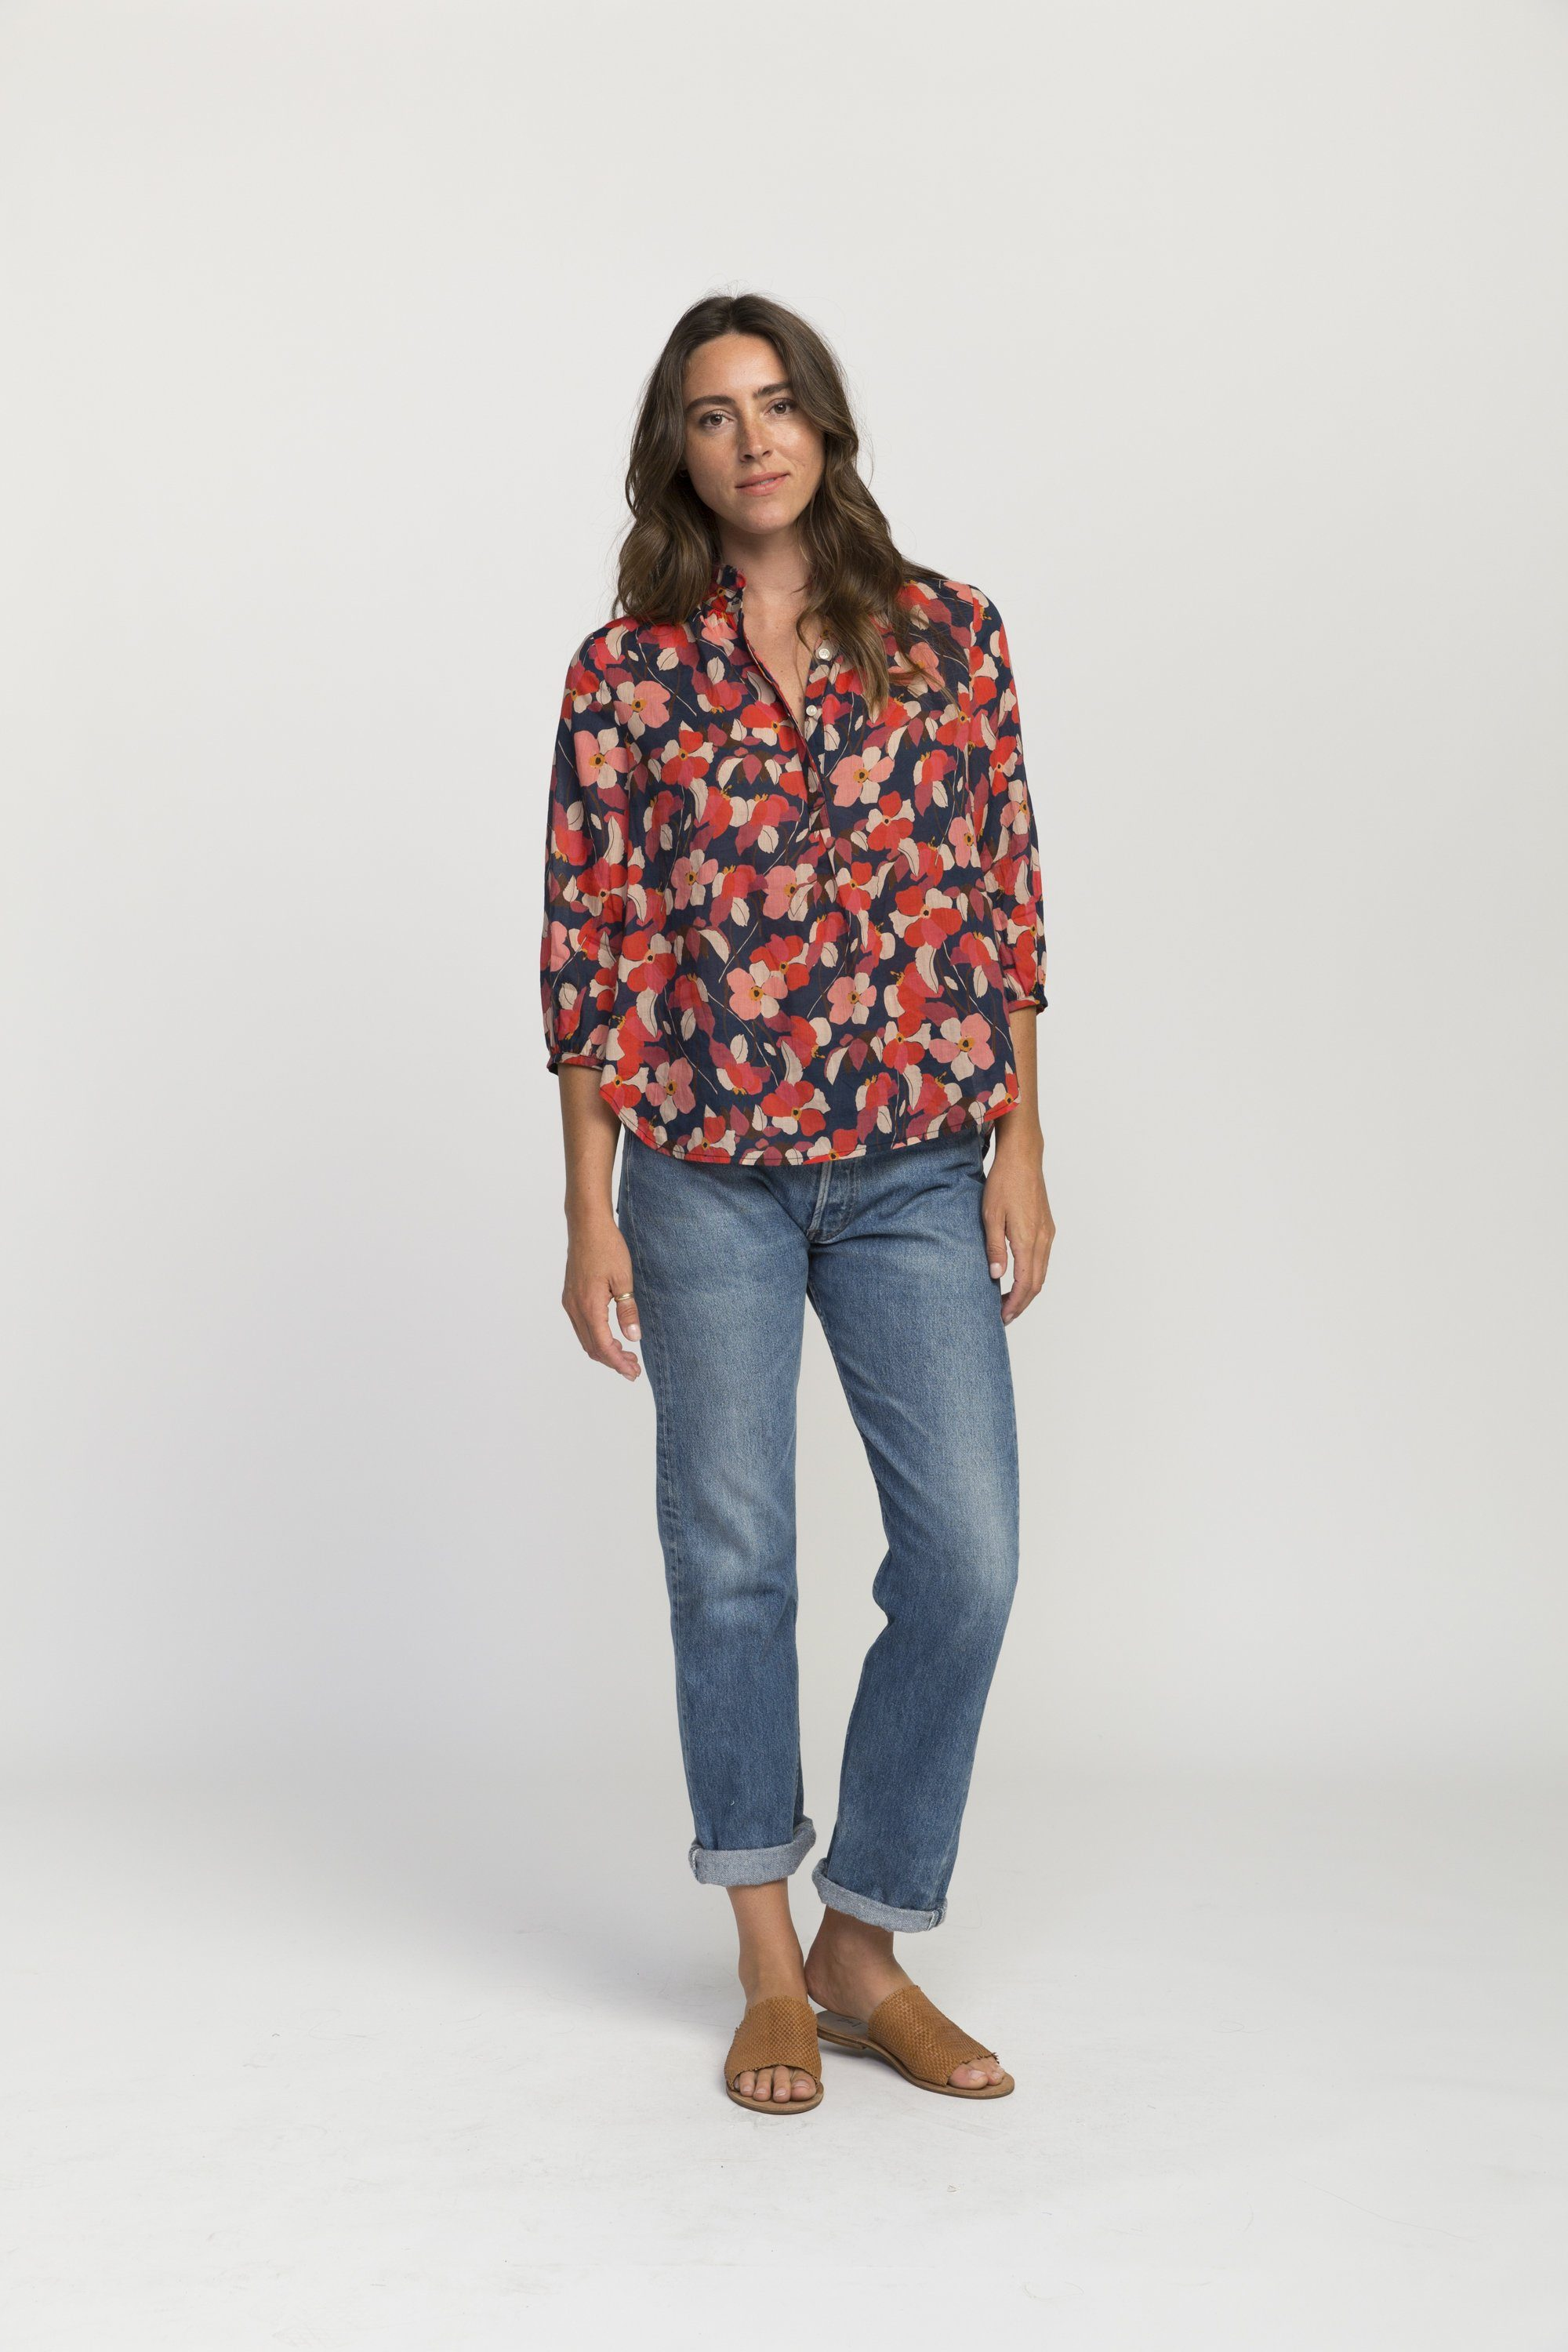 Sara henley shirt NAVY RED FLORAL by Trovata - 3